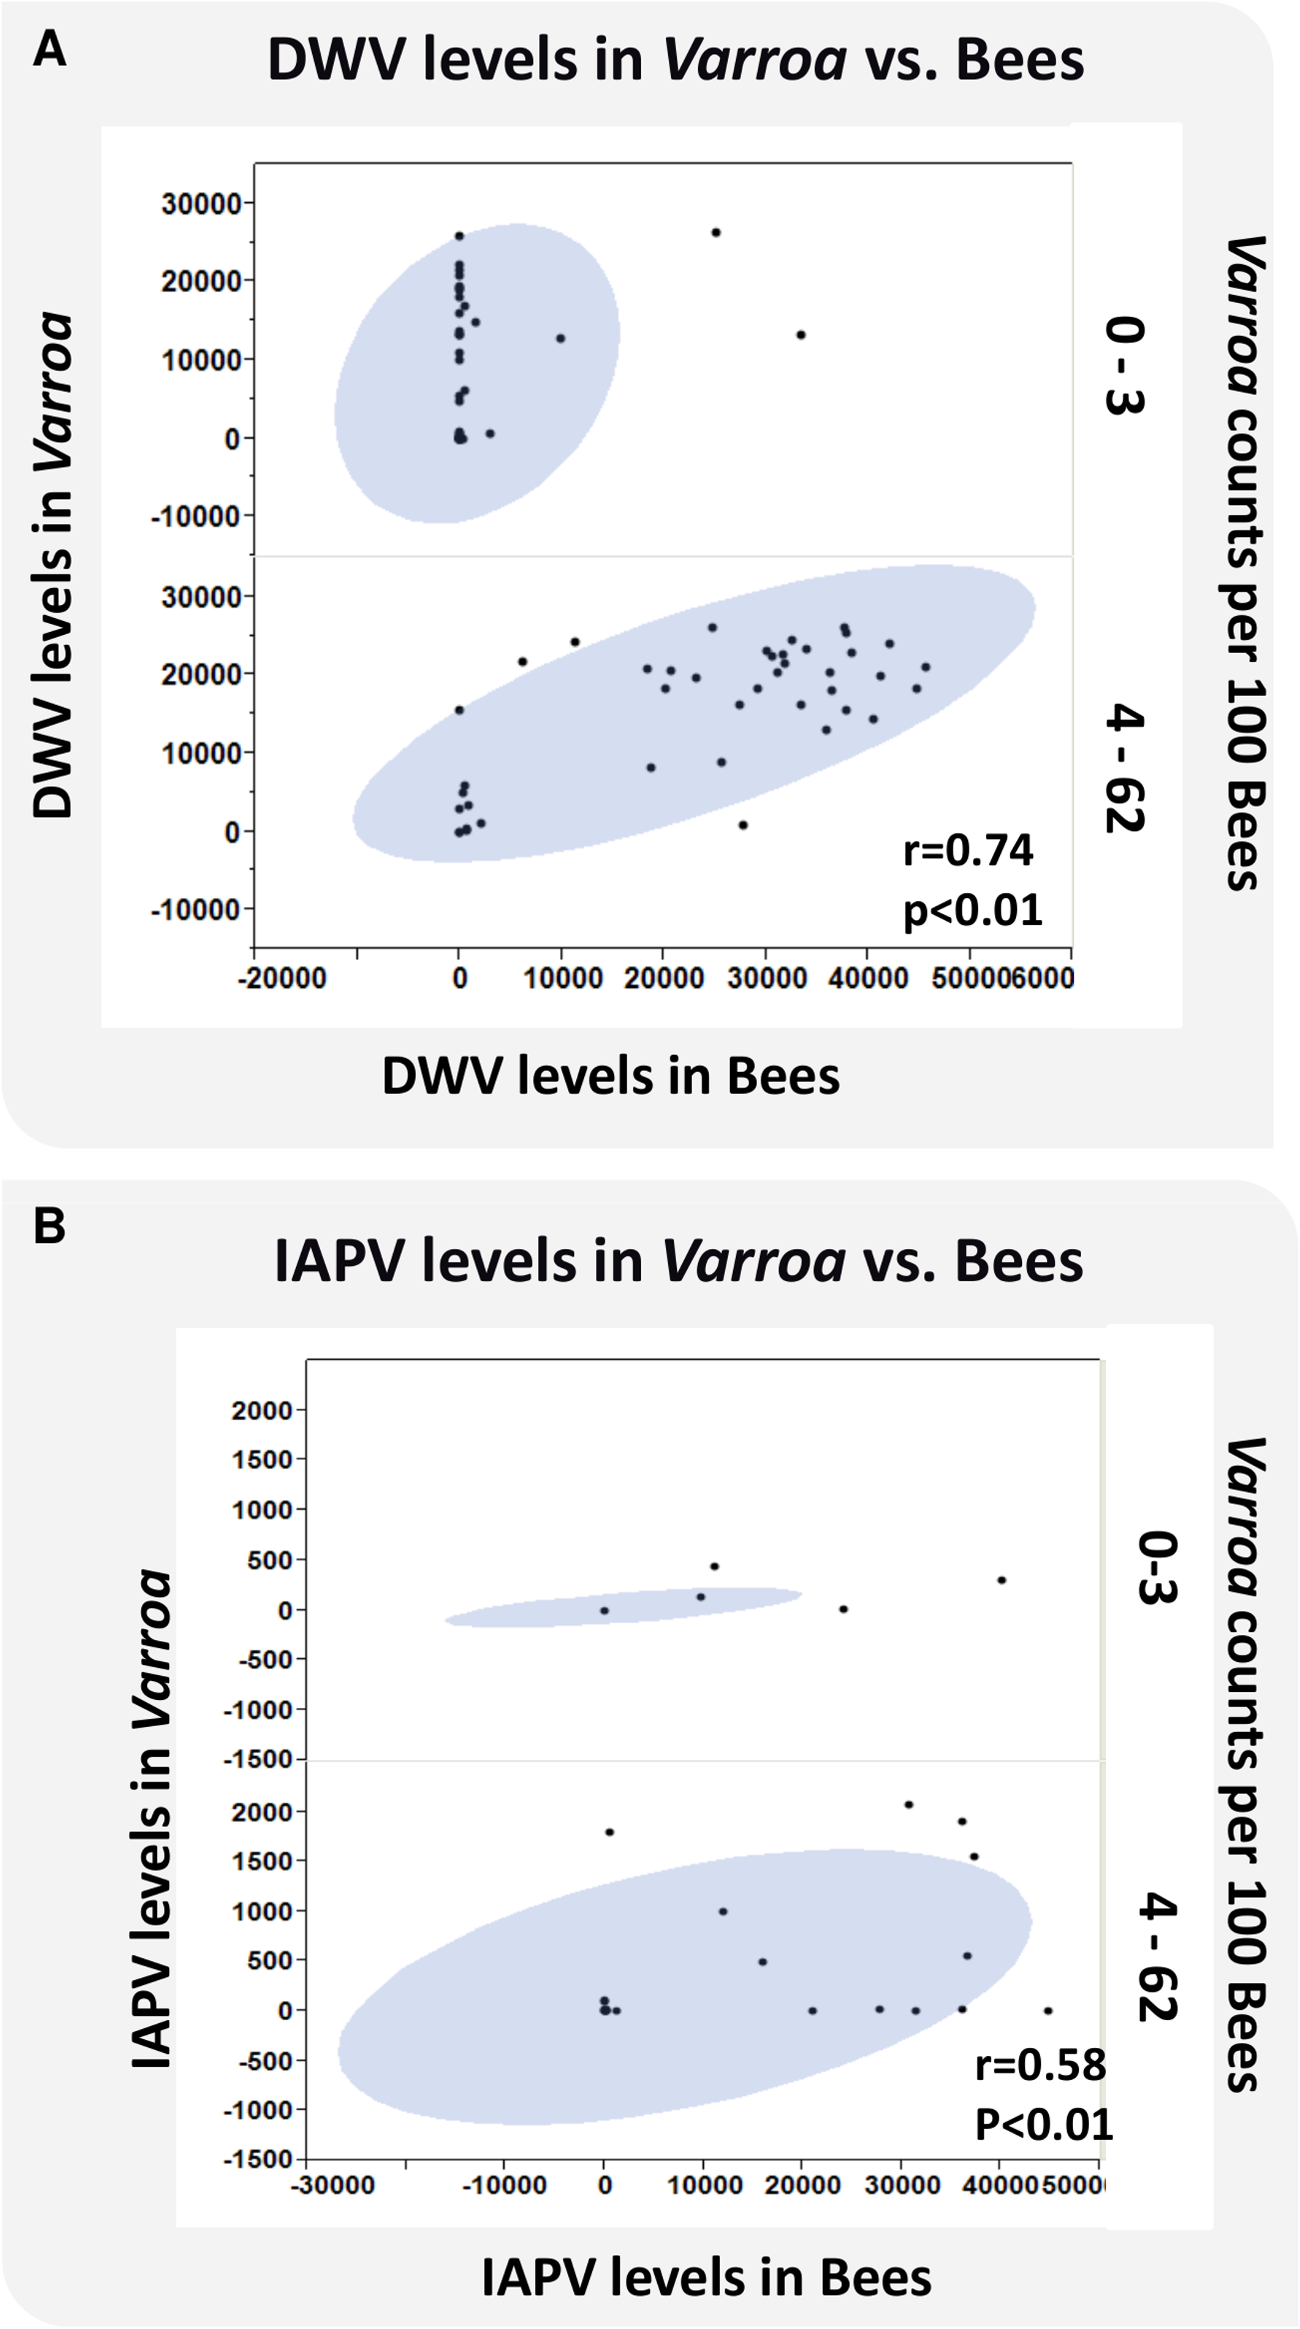 Virus levels of DWV and IAPV in bees and <i>Varroa</i> and the correlation to <i>Varroa</i> counts.